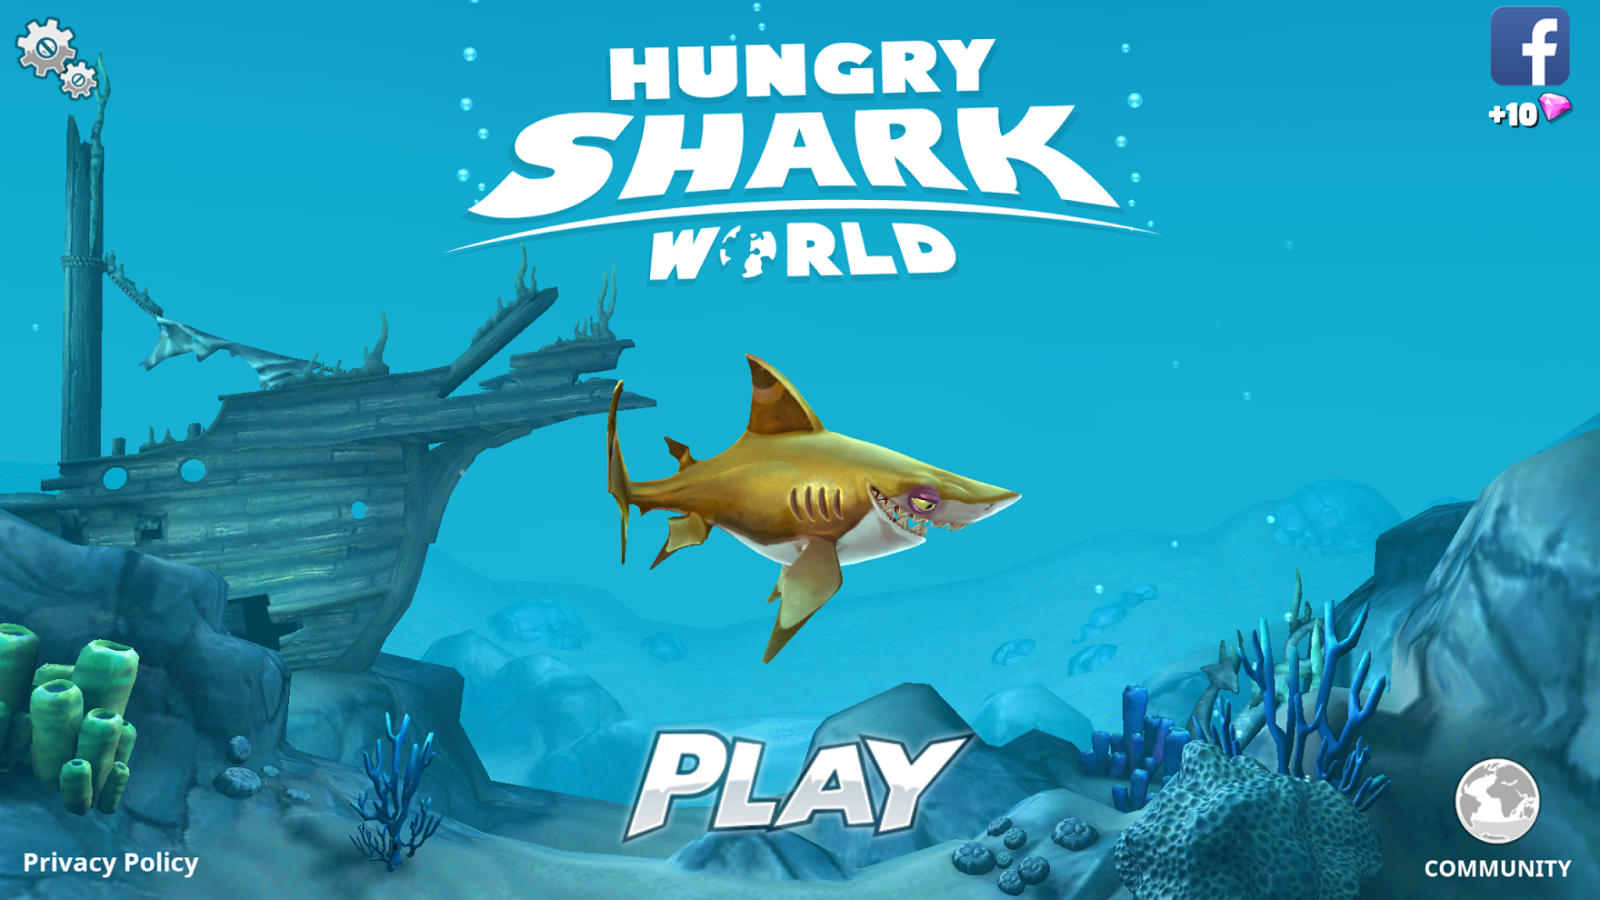 Fun addicting game apps - An Action Game With Aquatic Theme And Full Of Missions Hungry Shark World Is A Fun And To Me Addictive Game To Play With